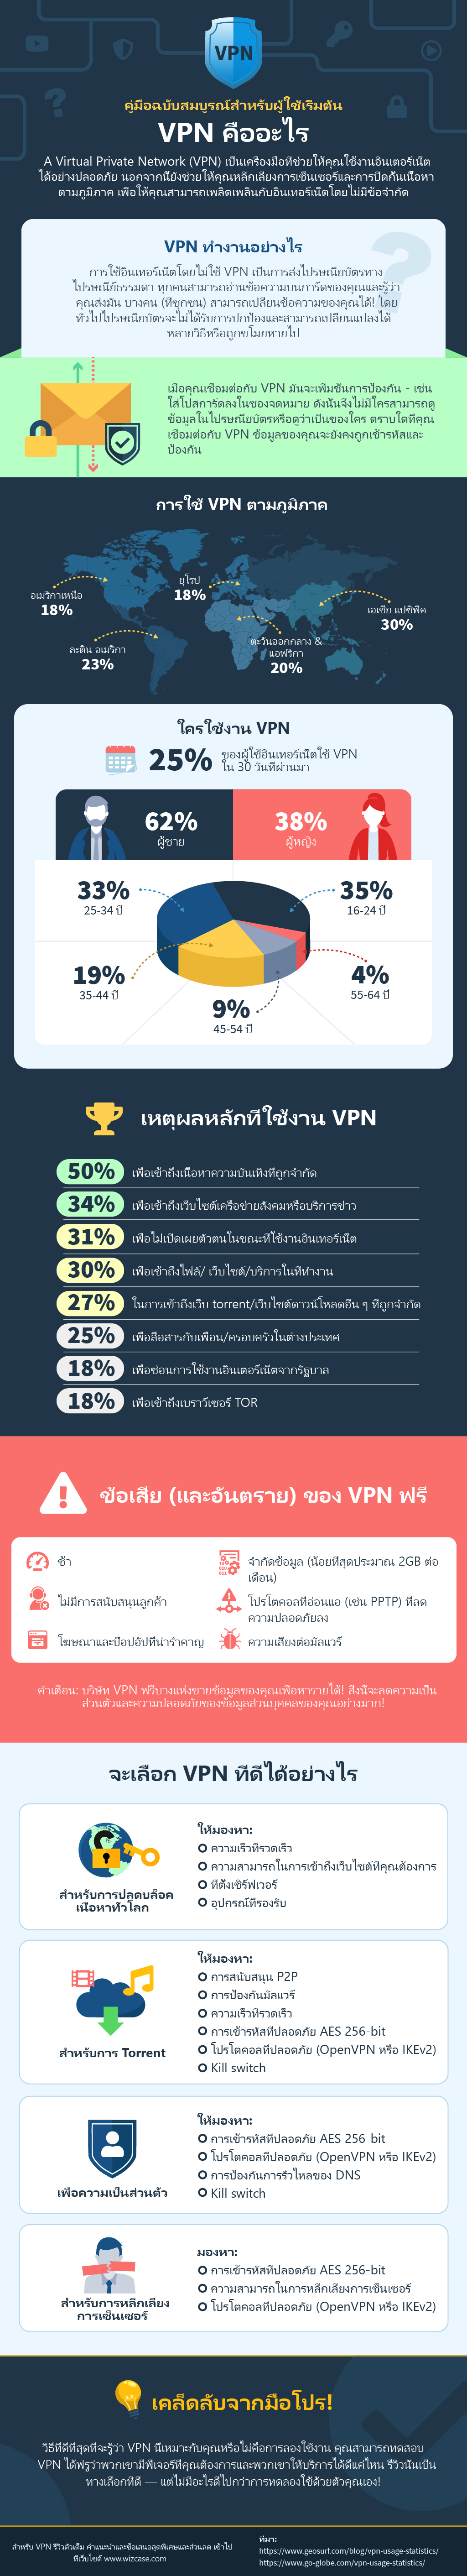 infographic guide to what is a VPN in Thai